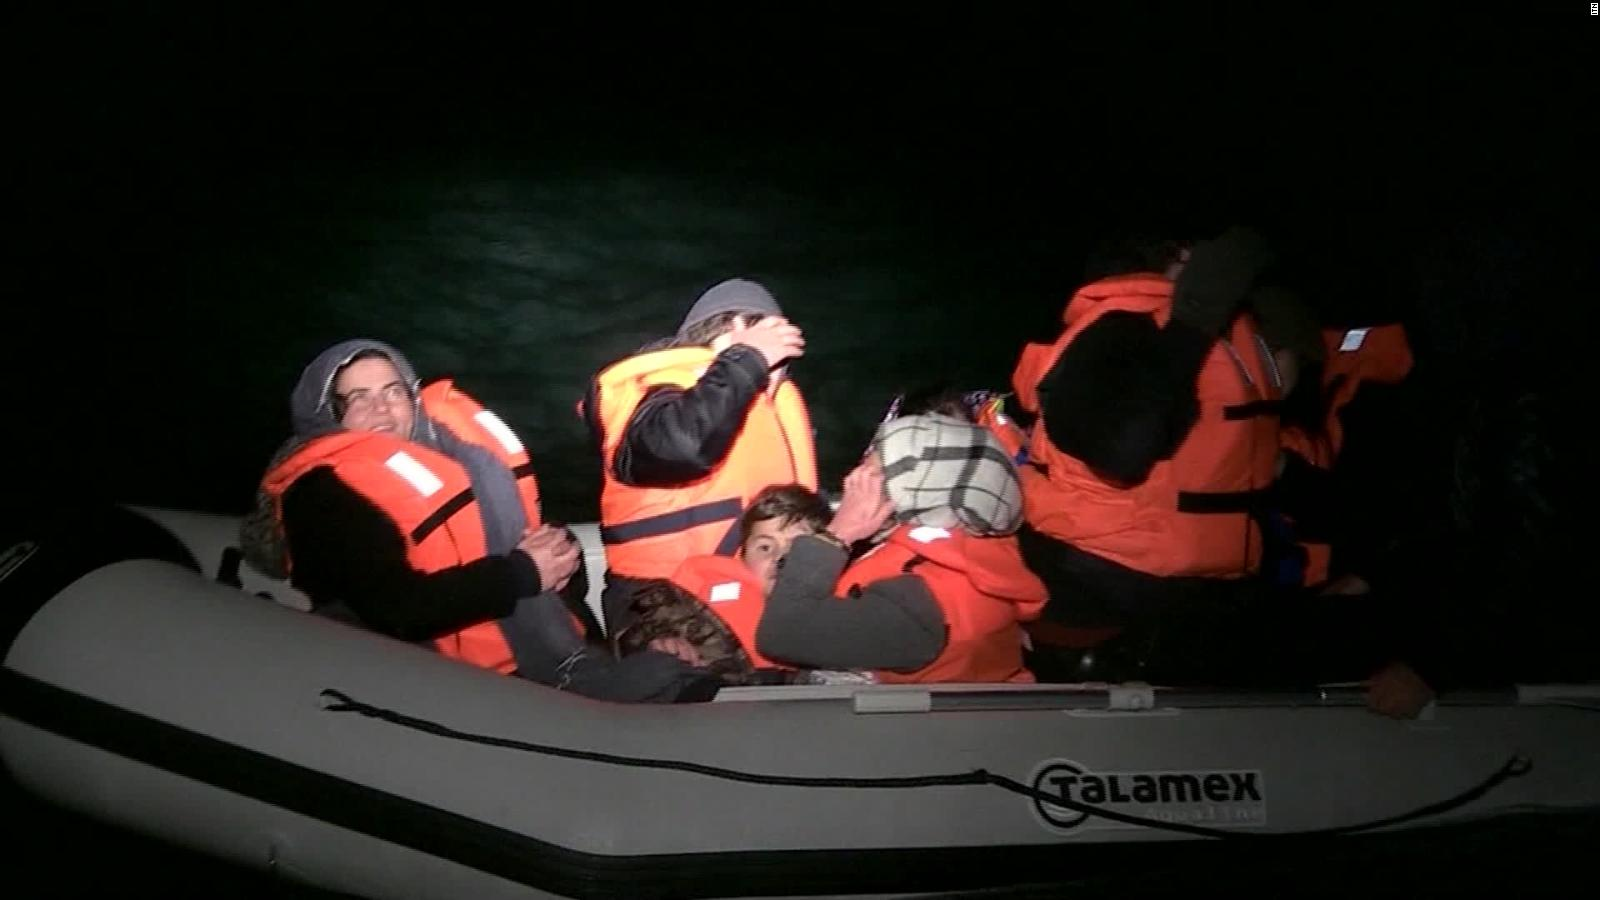 Migrants Attempt Trips Across English Channel Cnn Video